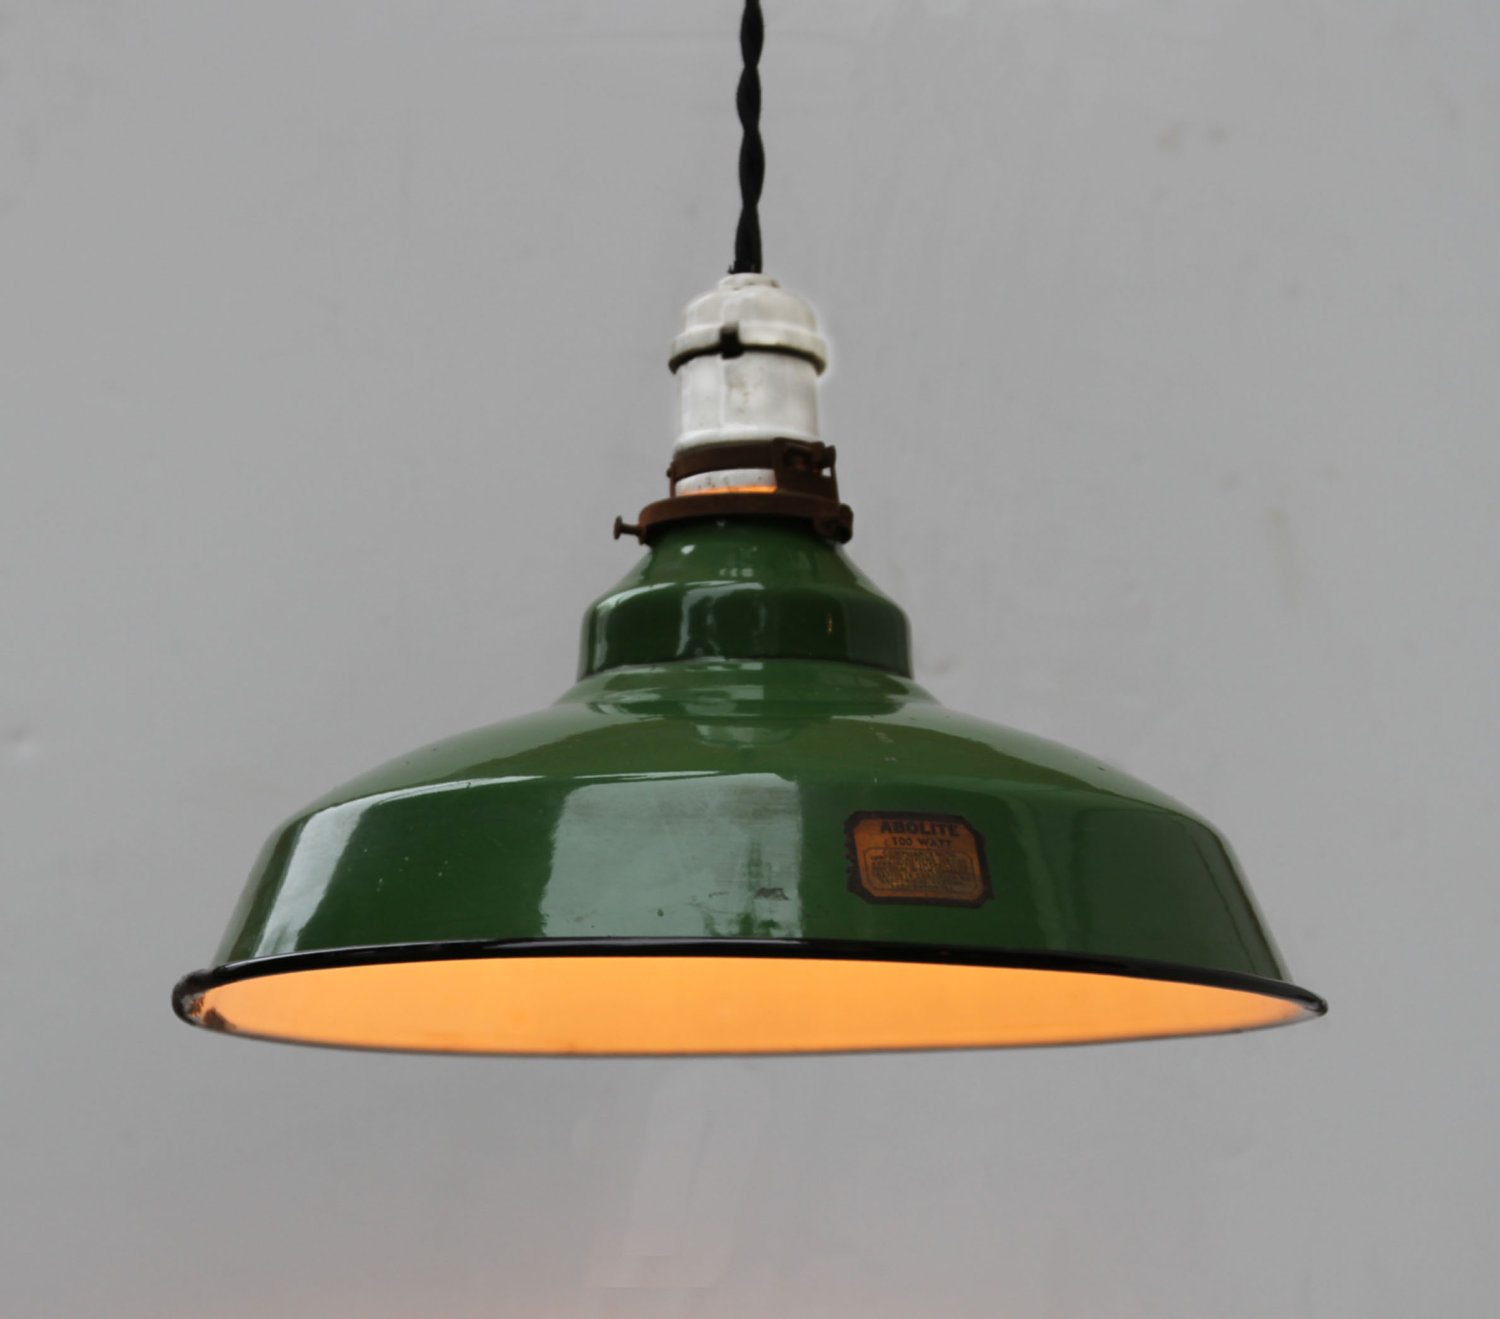 Vintage Ceiling Lights Are The Best Light Options Warisan Room Cage Retro On Wiring Led Conclusion